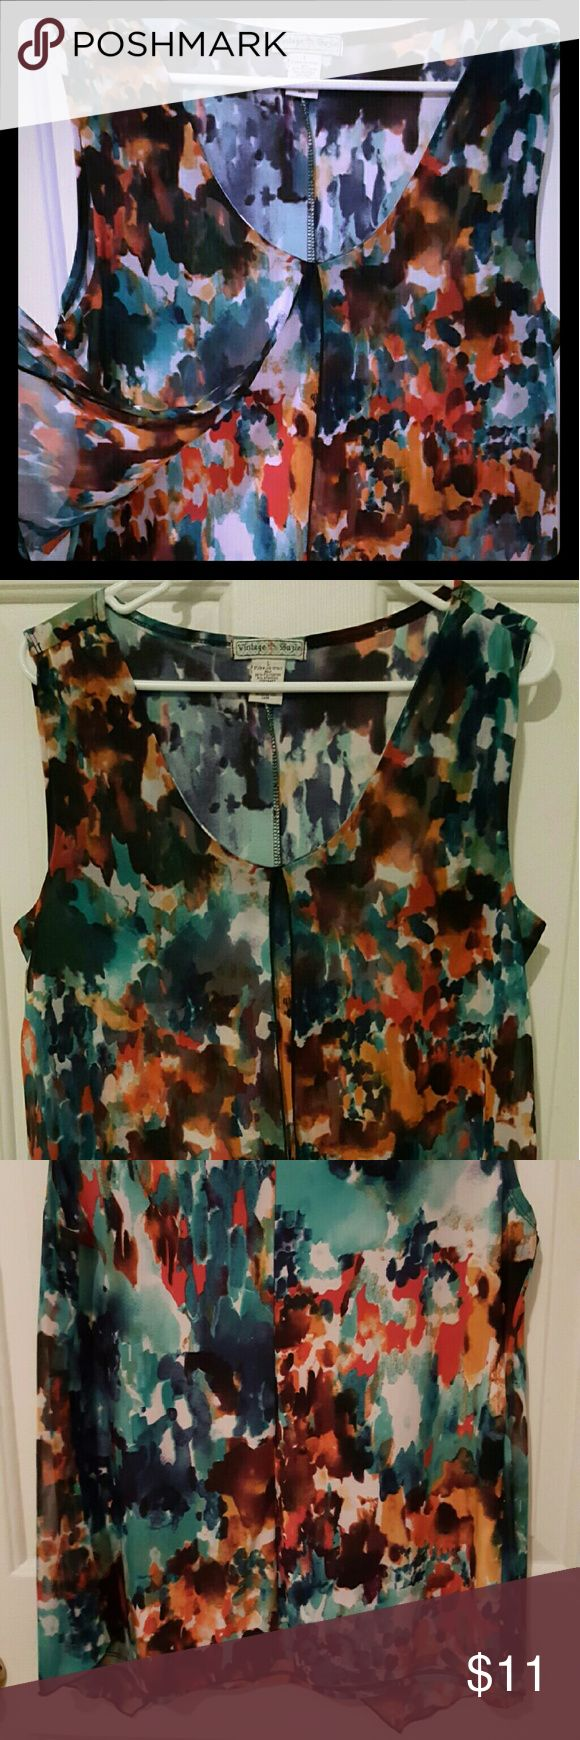 Summertime Fun Top Multi-colored flowy top that is great for humid summer nights. 100% polyester flowy sheer covering, 96% & 5% spandex top. Gently worn. Newly laundered.  Measurements: 18 in bust (armpit to armpit) 25 in long (shoulder to bottom) Vintage Suzie Tops Blouses